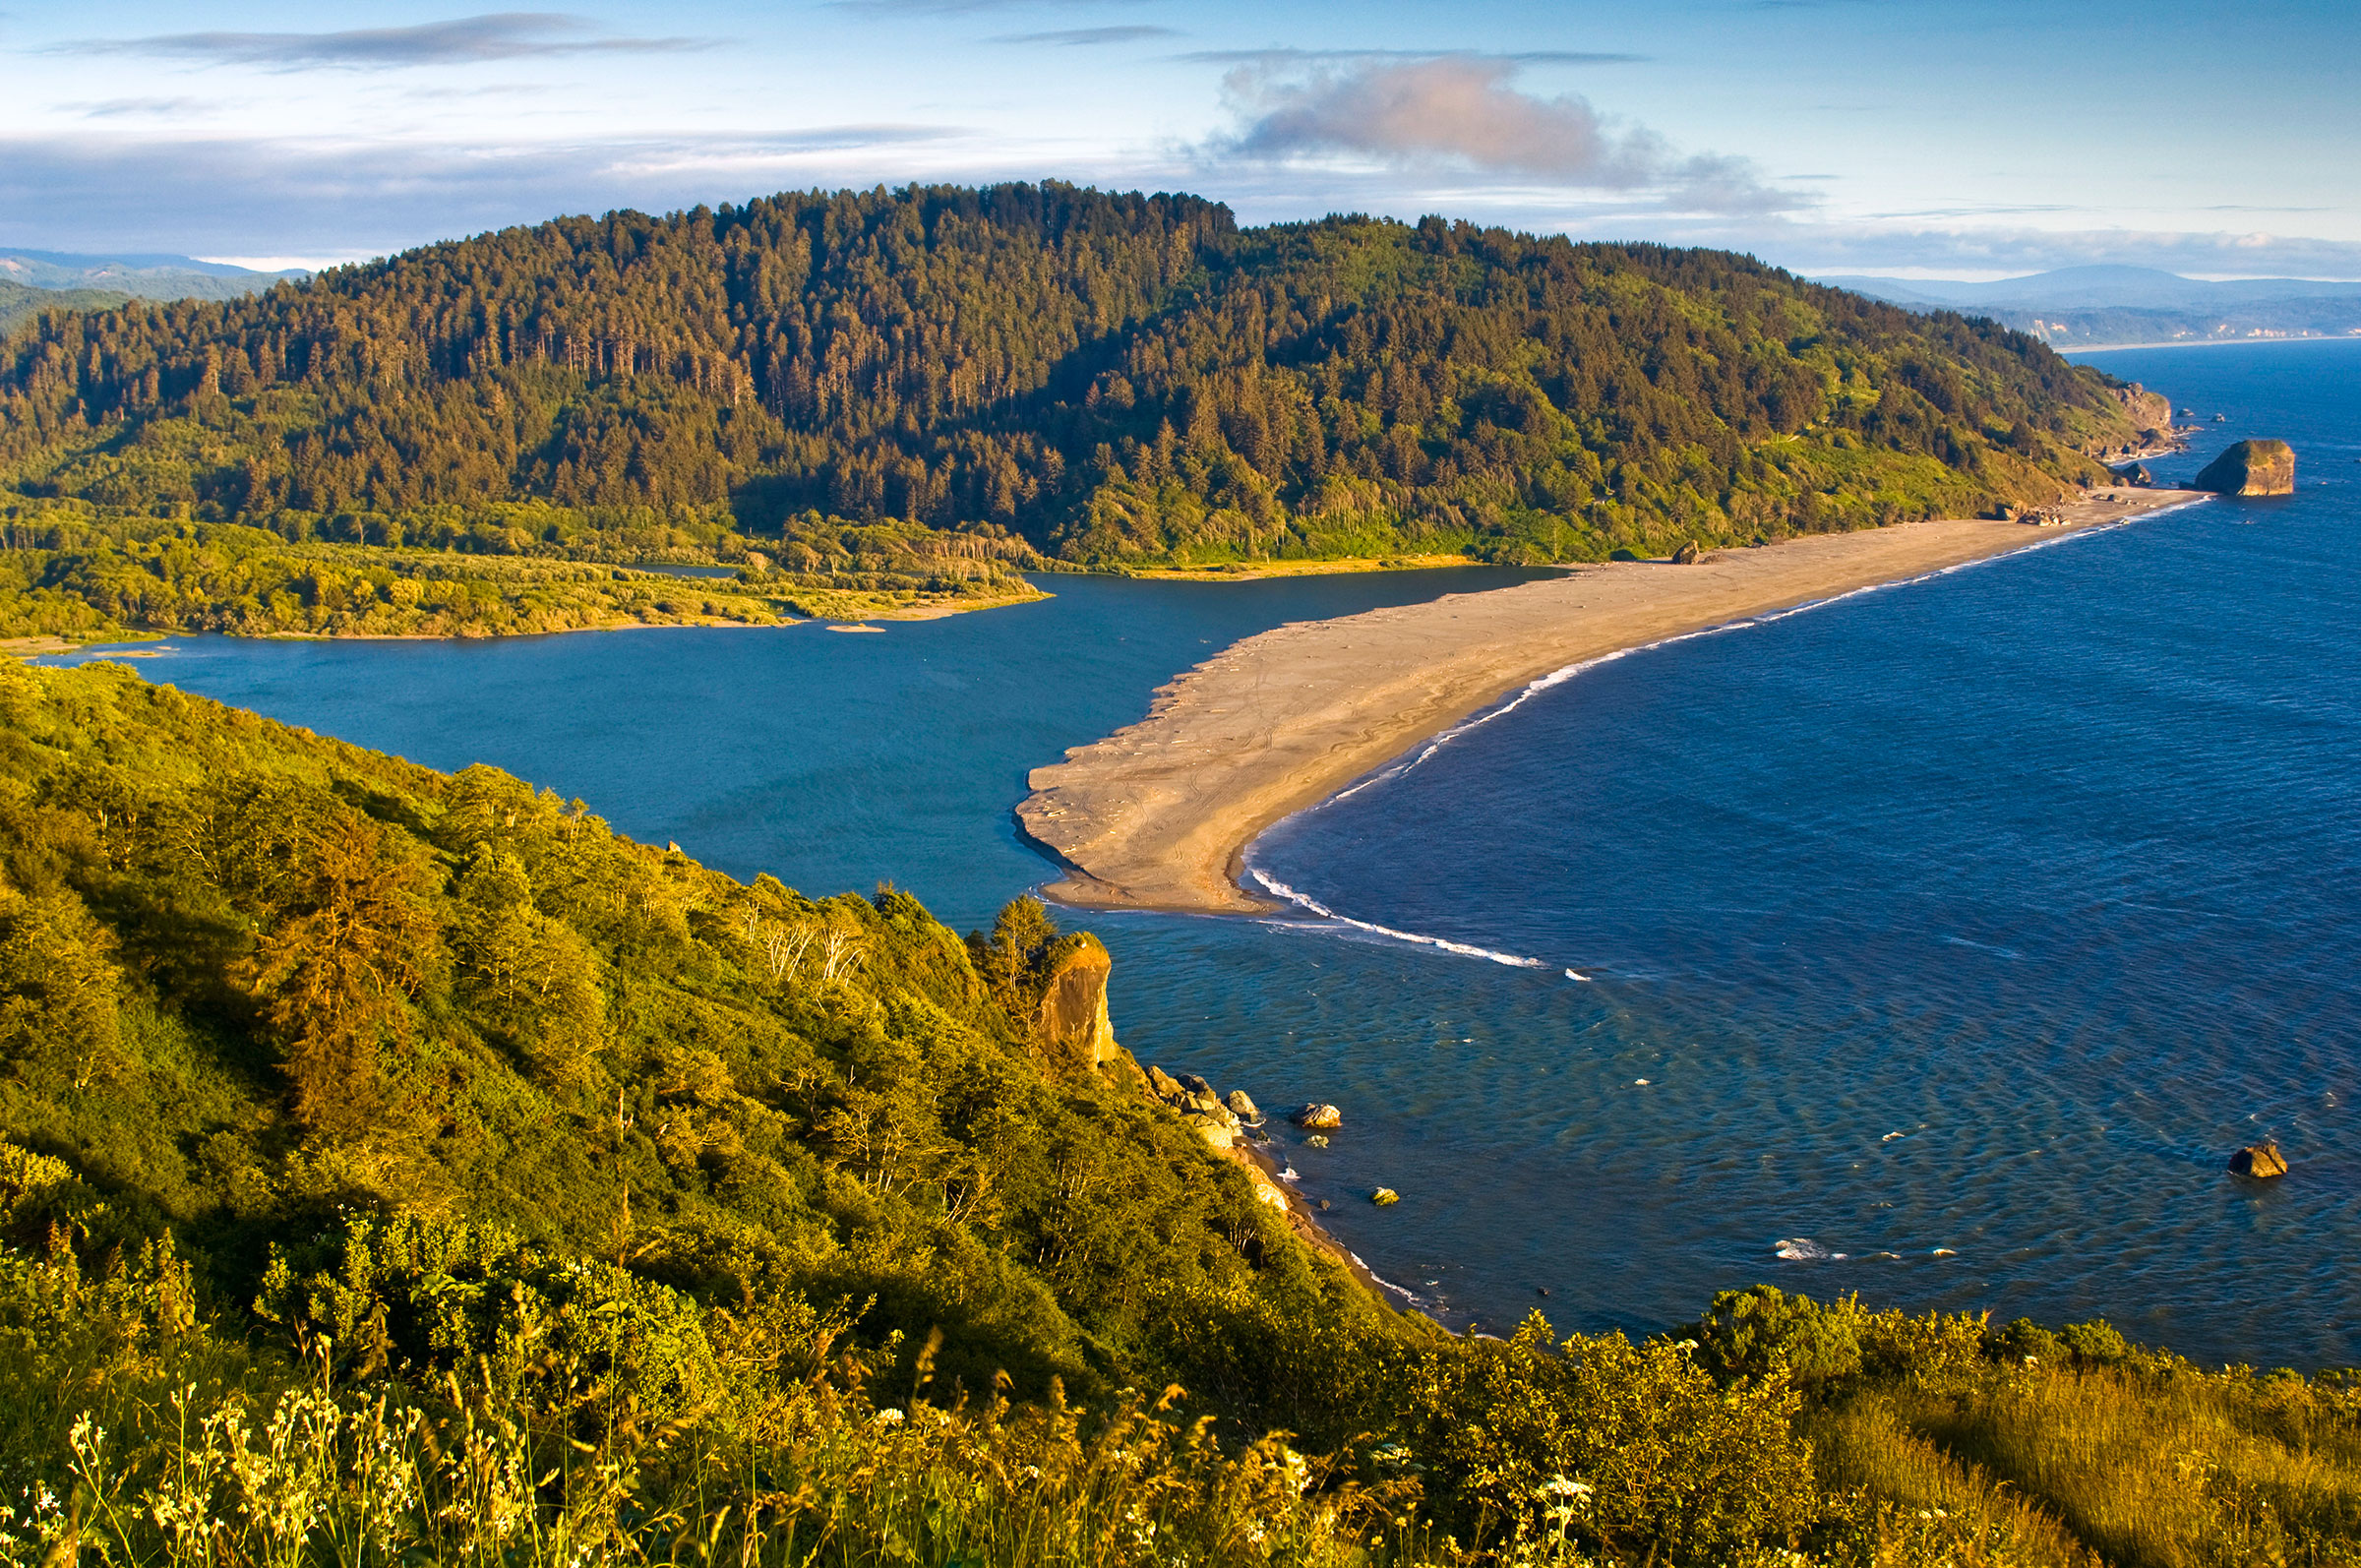 Scientists hired by the Yurok Tribe found that the Klamath River region, which includes Redwood National and State Parks, still provides suitable habitat and enough food to sustain a California Condor population. Gary Crabbe/Enlightened Images/Alamy